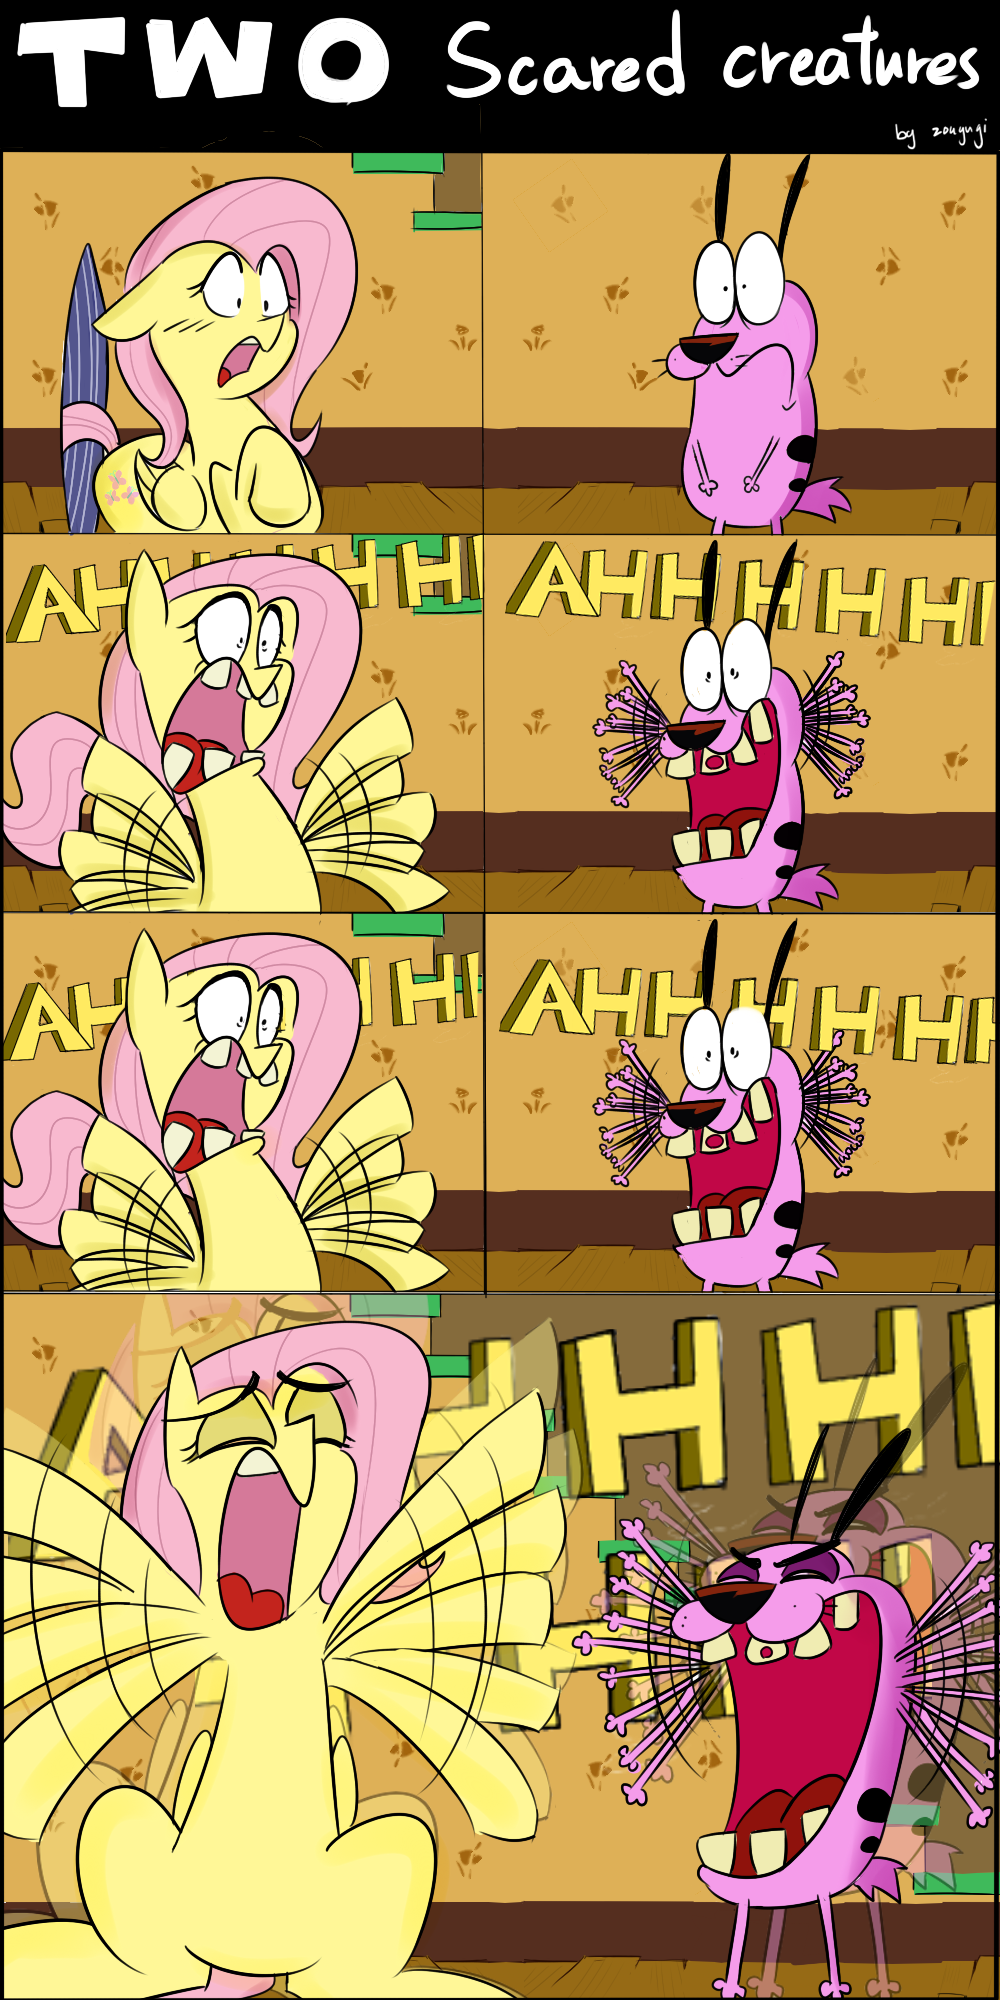 Two scared creatures by zouyugi